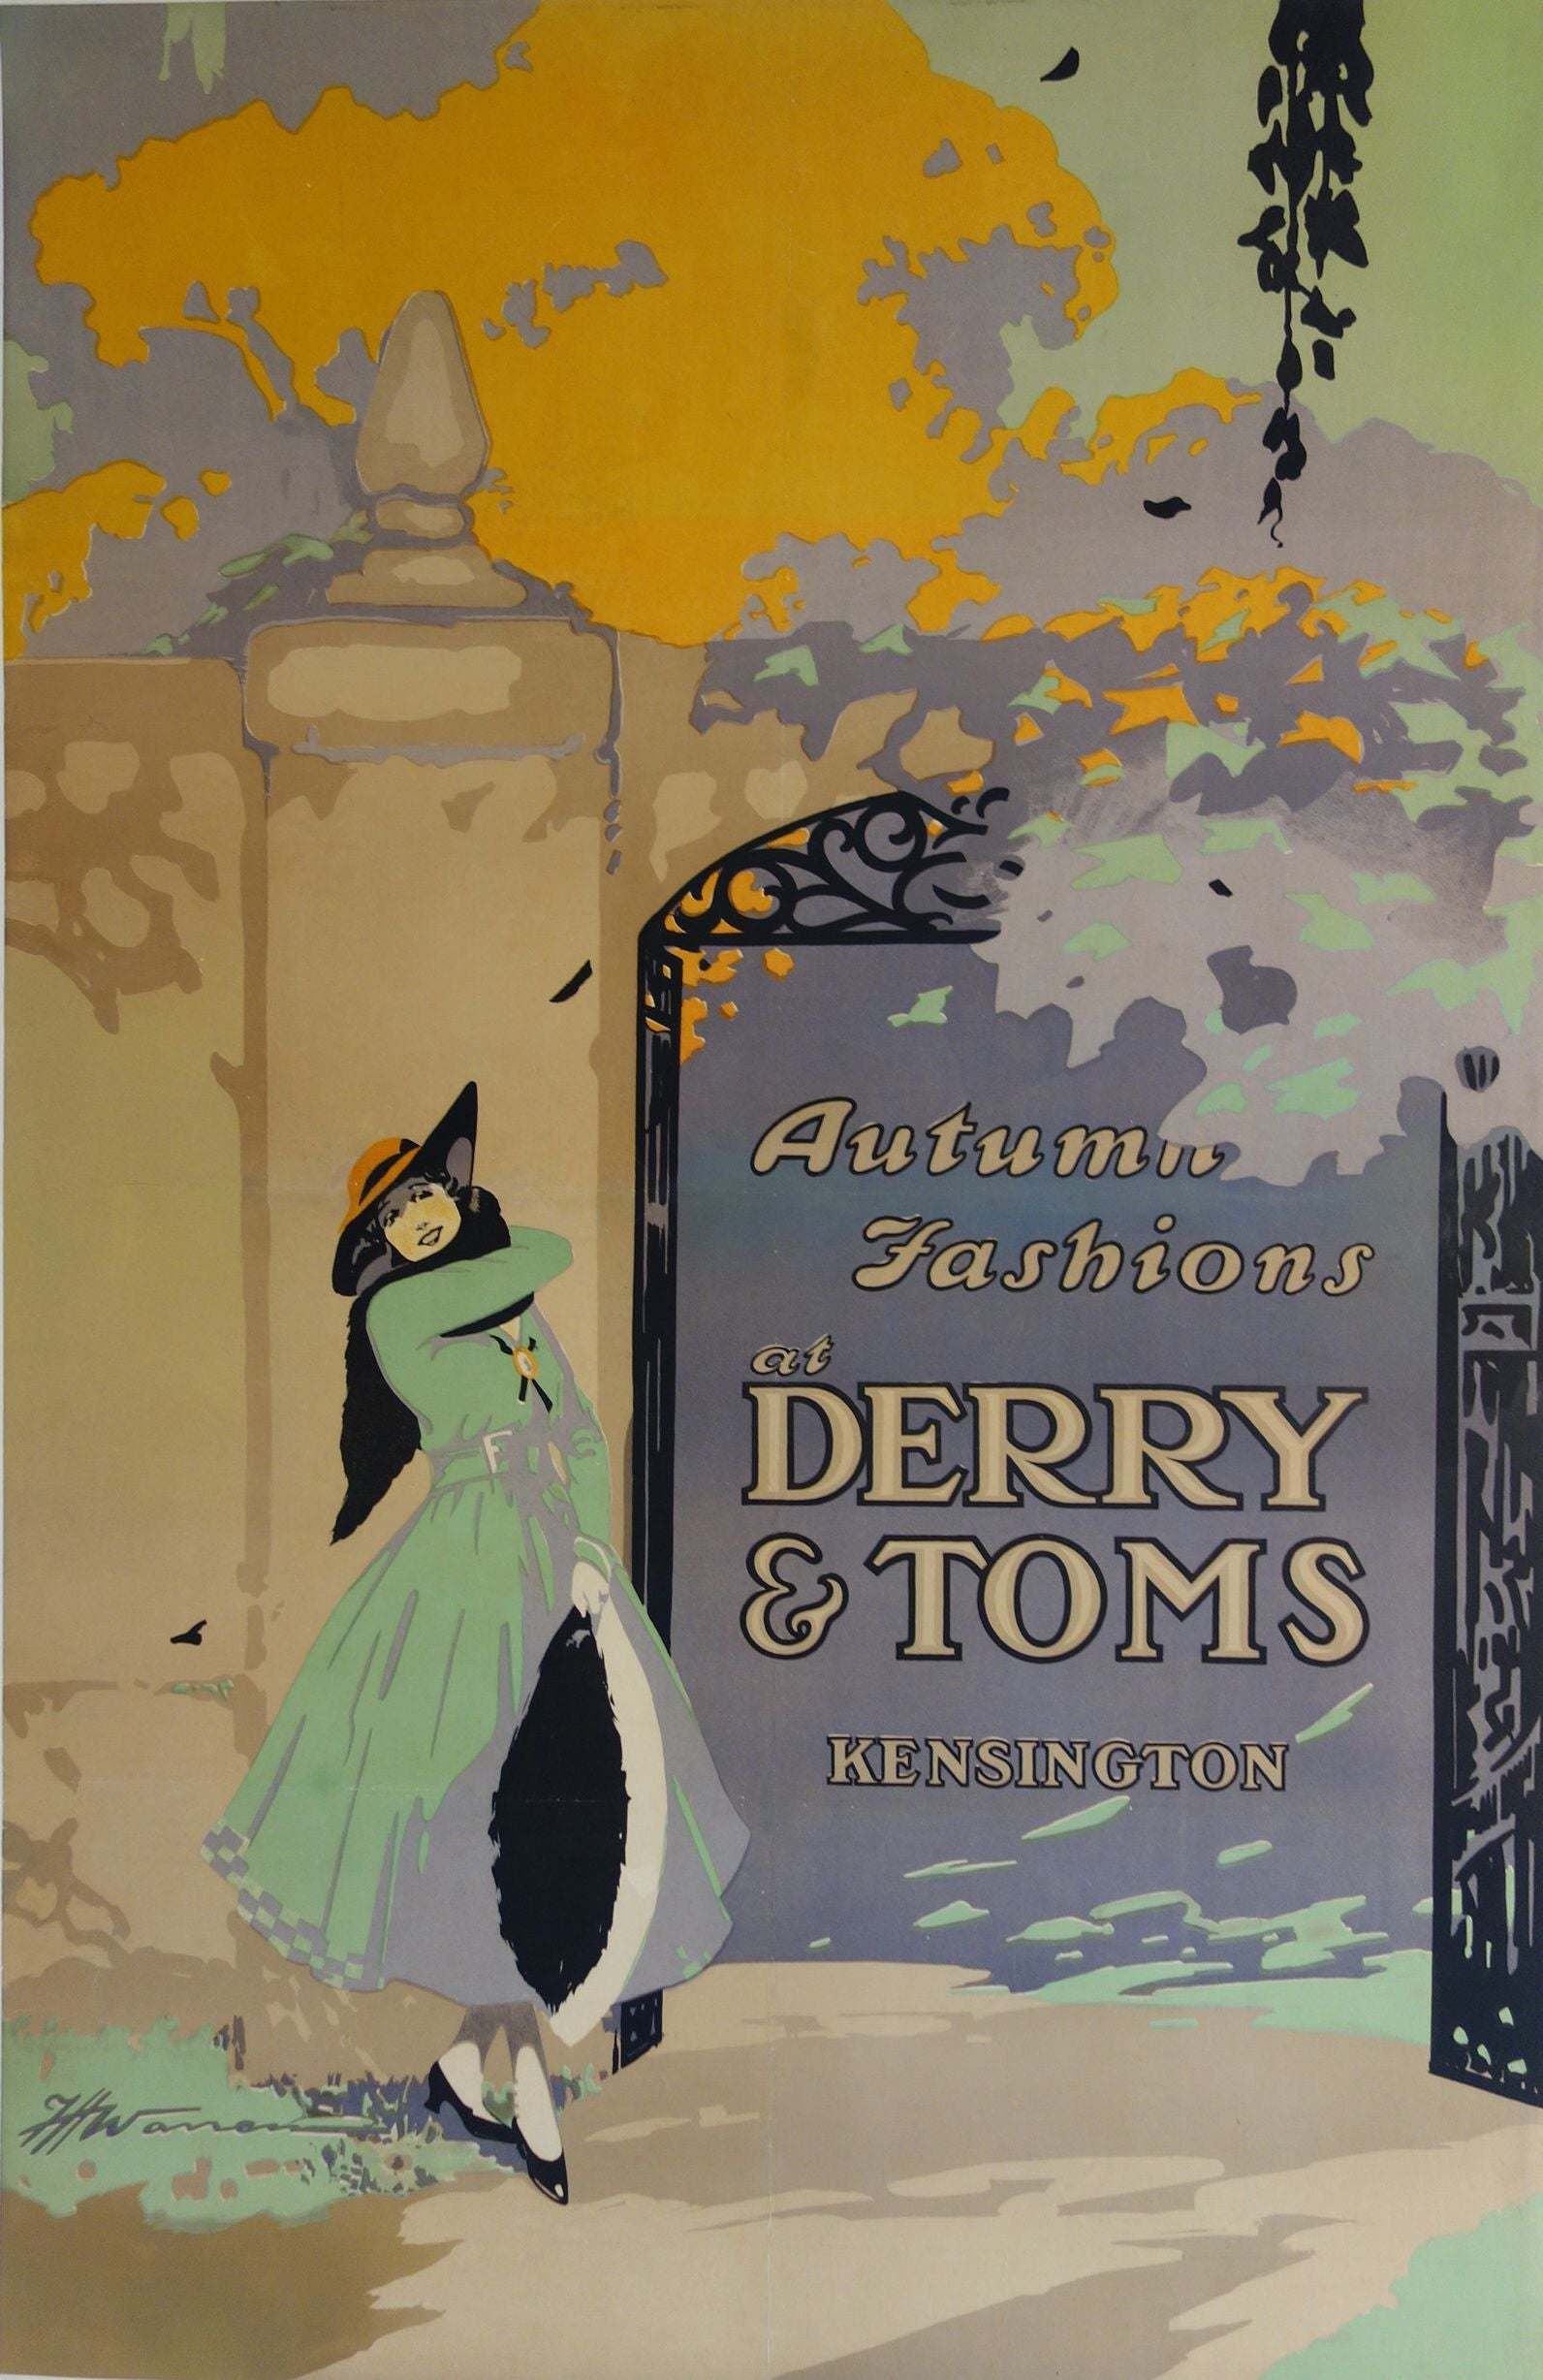 Autumn fashions at Derry & Toms